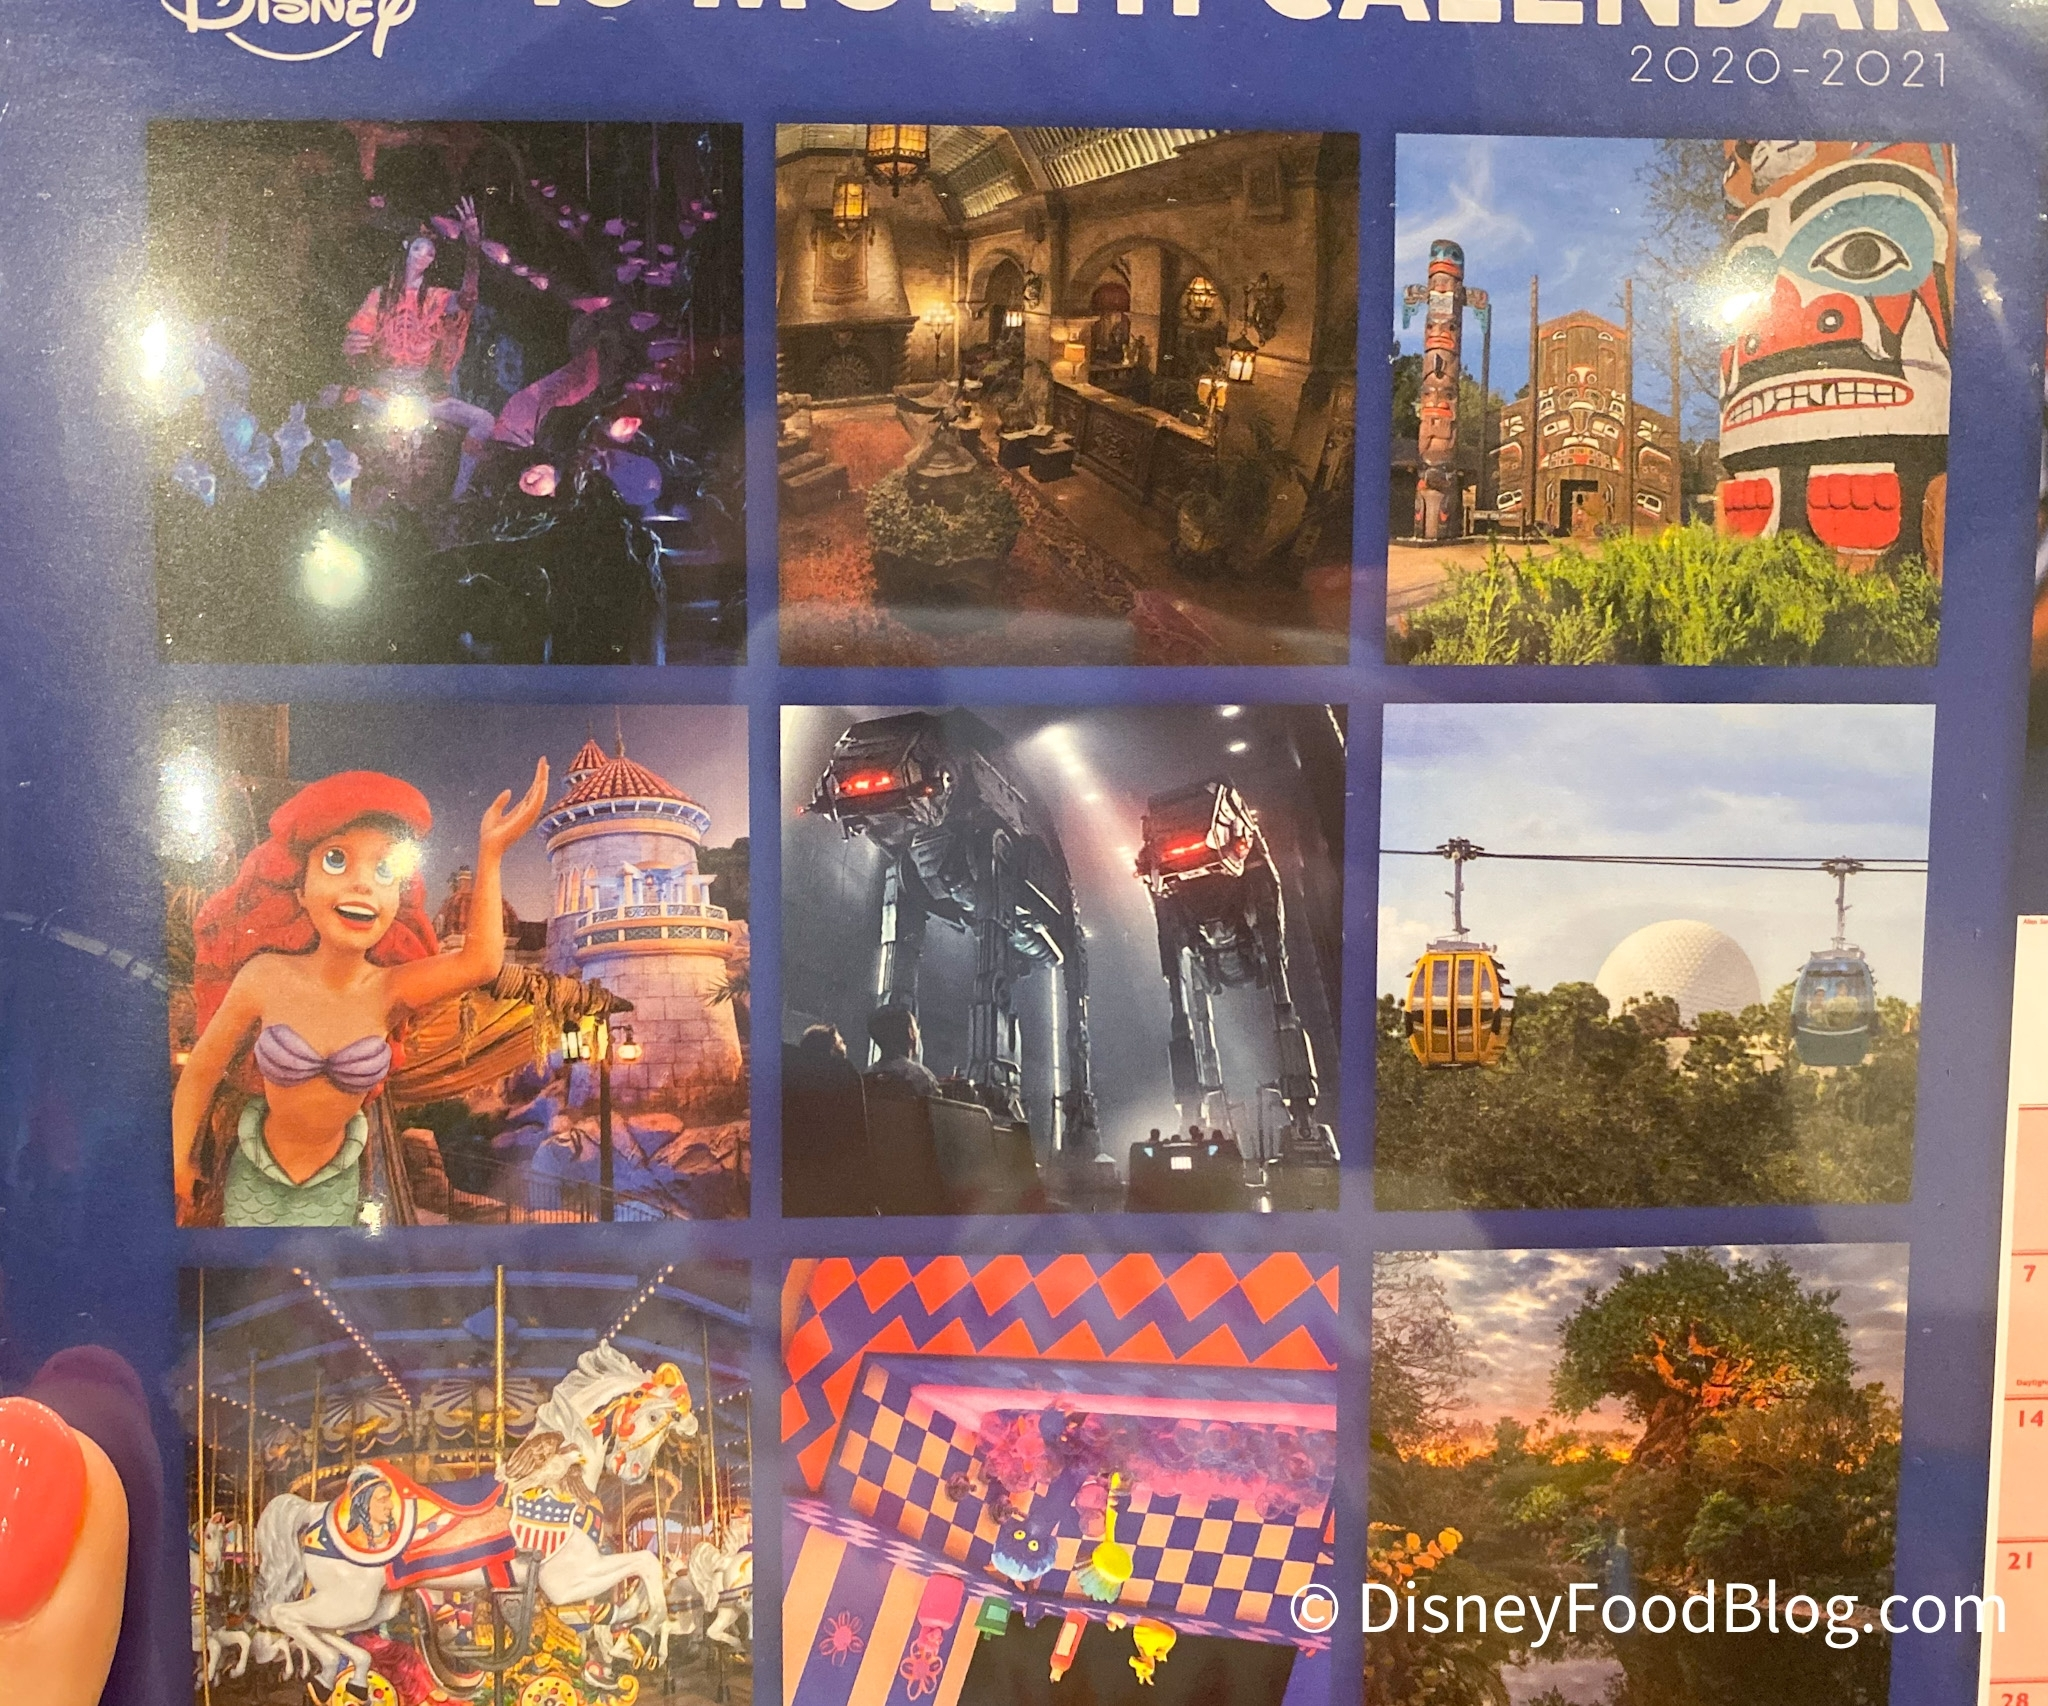 Spotted: A New 2020-2021 Calendar Is Now Available In Disney